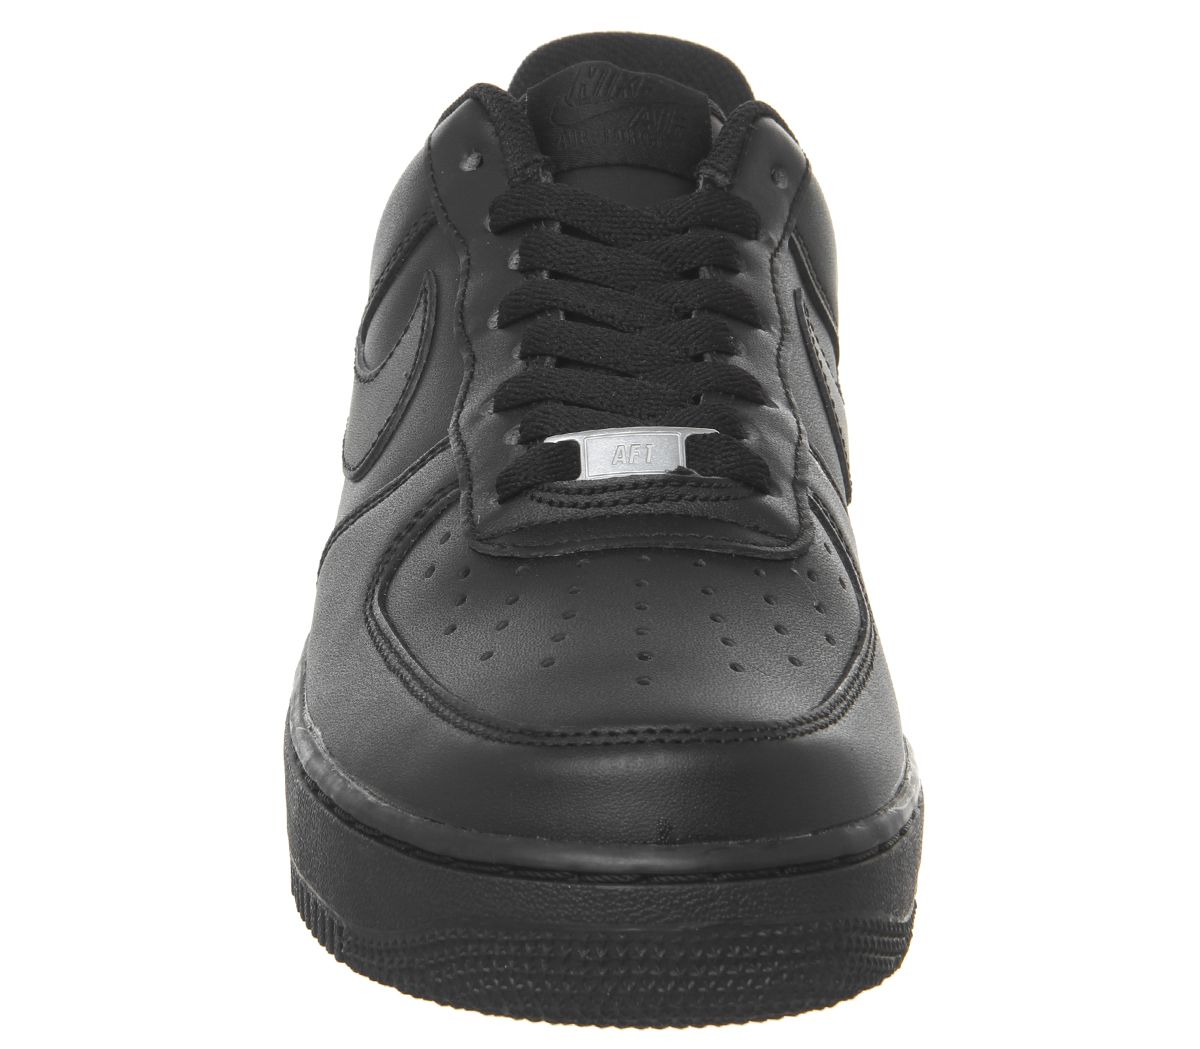 81006a4739a4 Nike Air Force 1 Trainers Black - His trainers